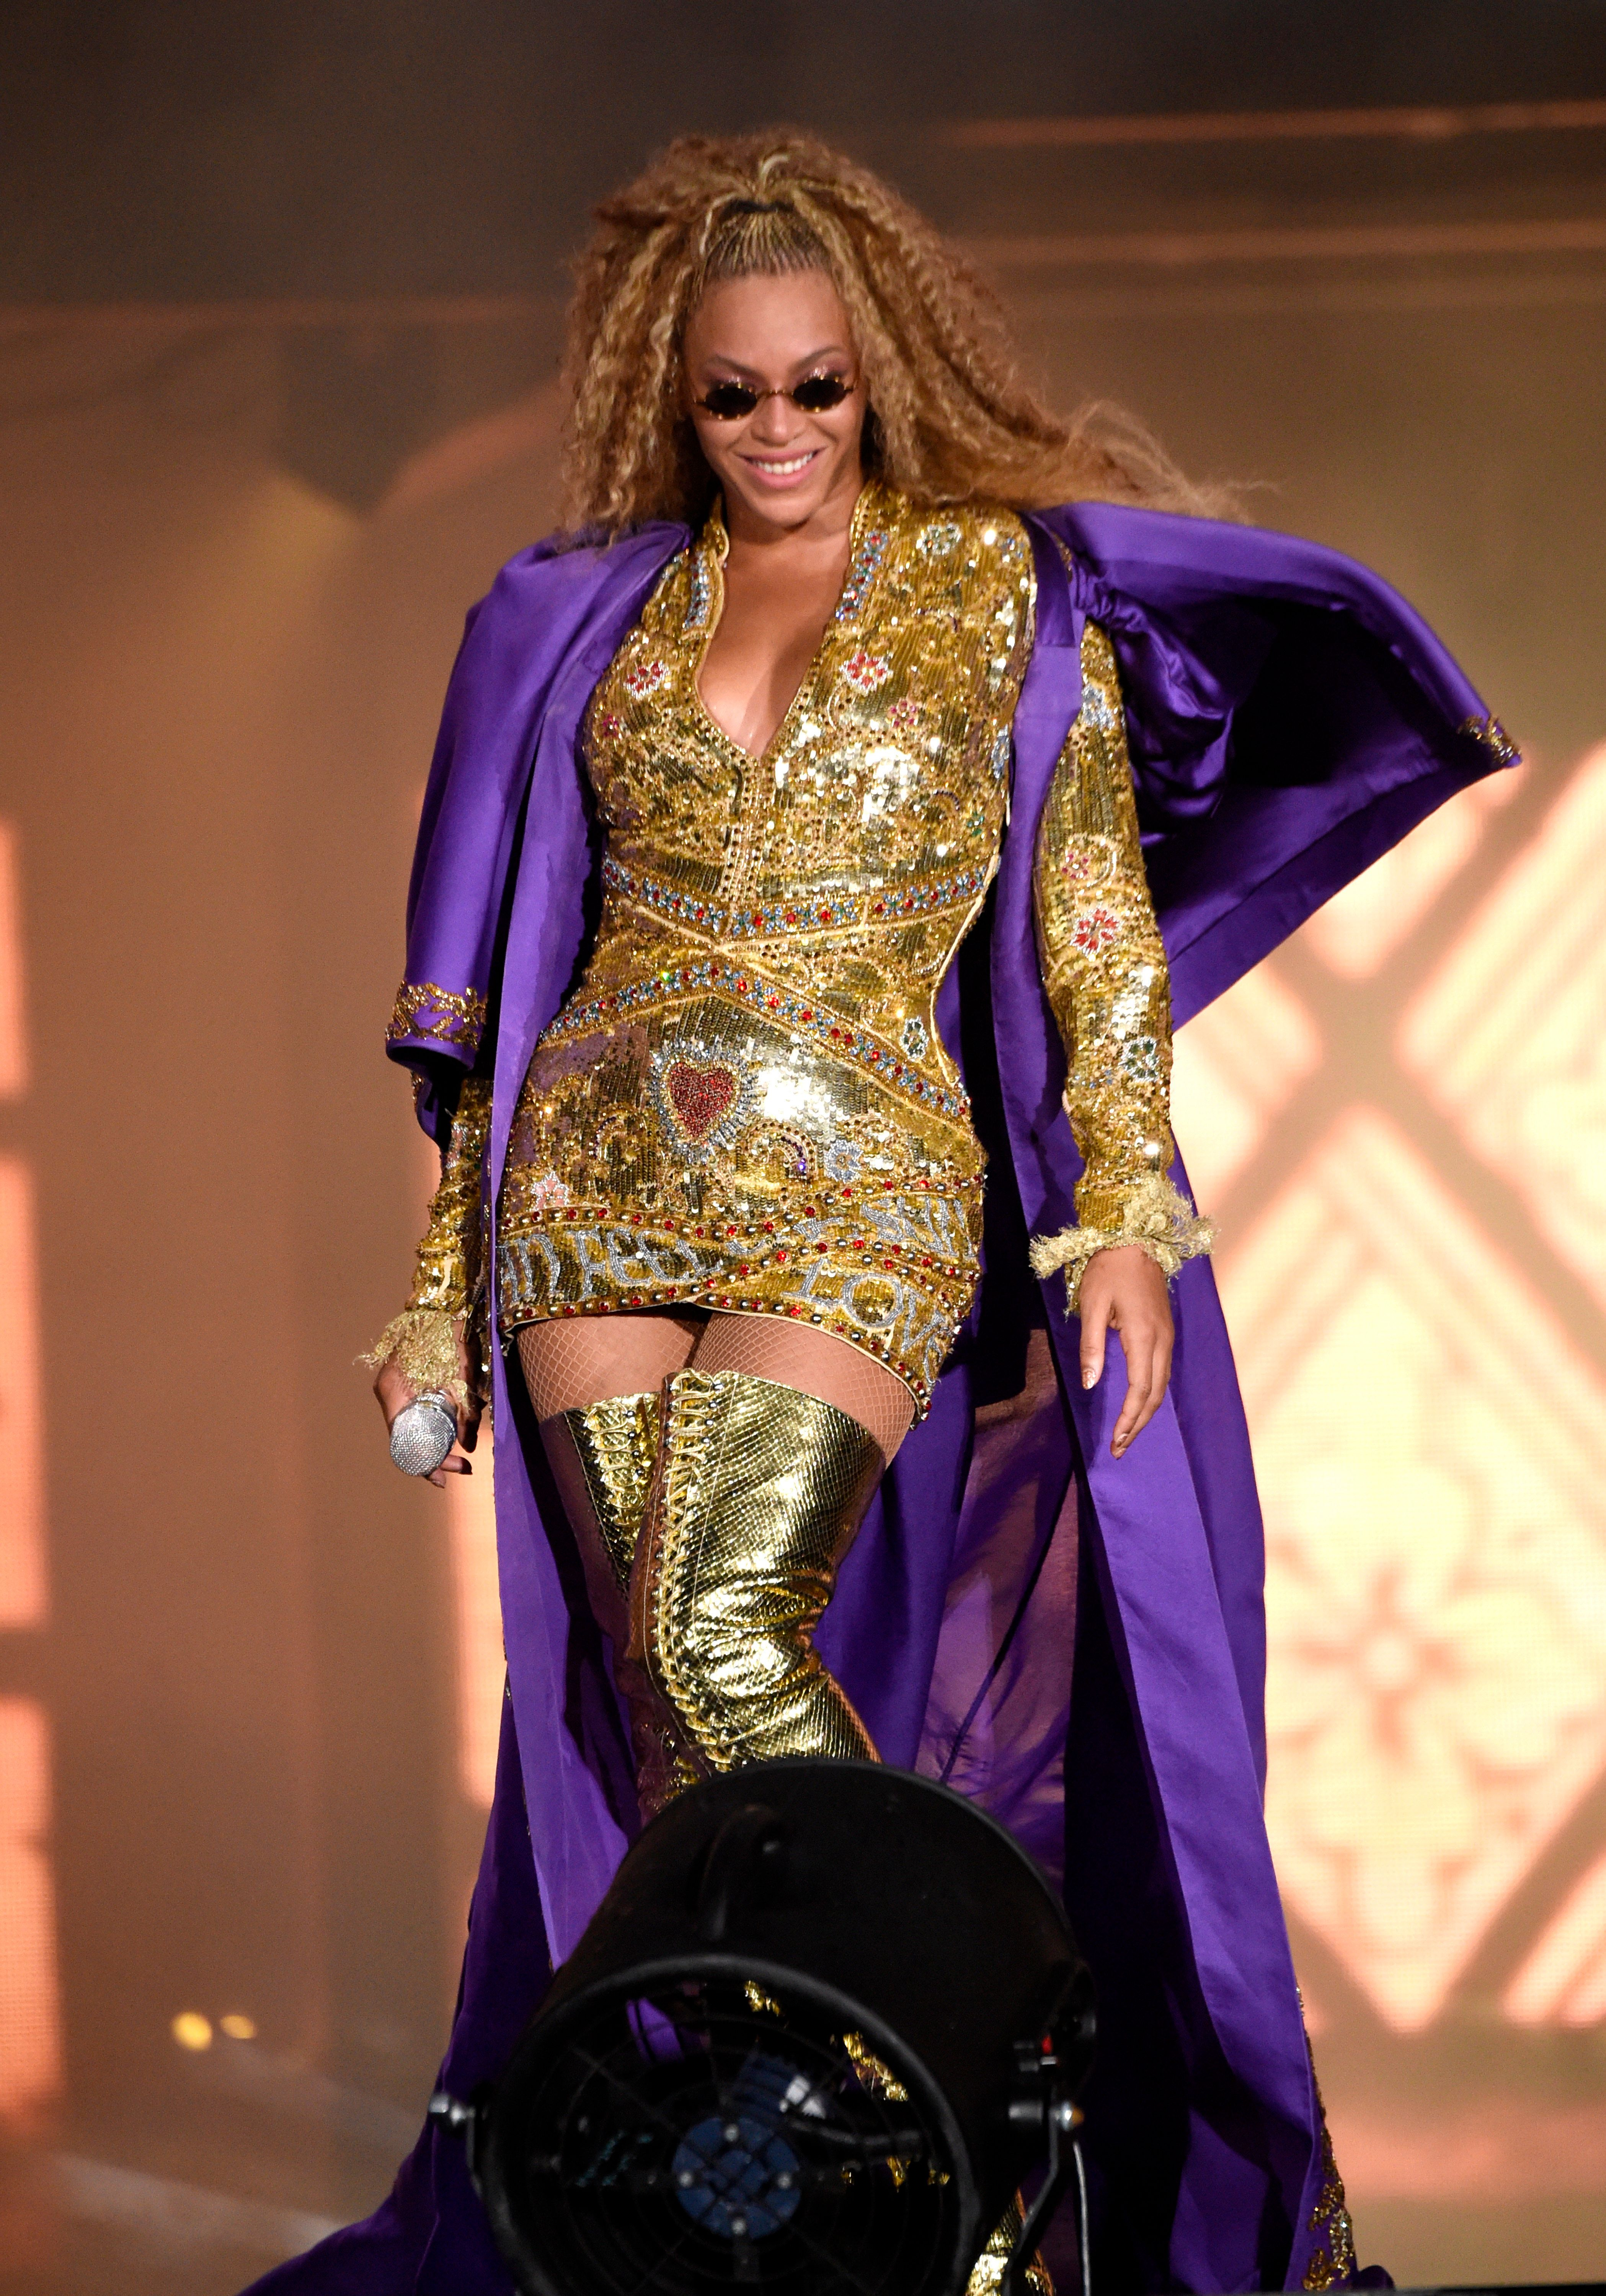 EAST RUTHERFORD, NJ - AUGUST 02:  Beyonce performs on stage during the 'On the Run II' tour at MetLife Stadium on August 2, 2018 in East Rutherford, New Jersey.  (Photo by Kevin Mazur/Getty Images for Parkwood Entertainment)